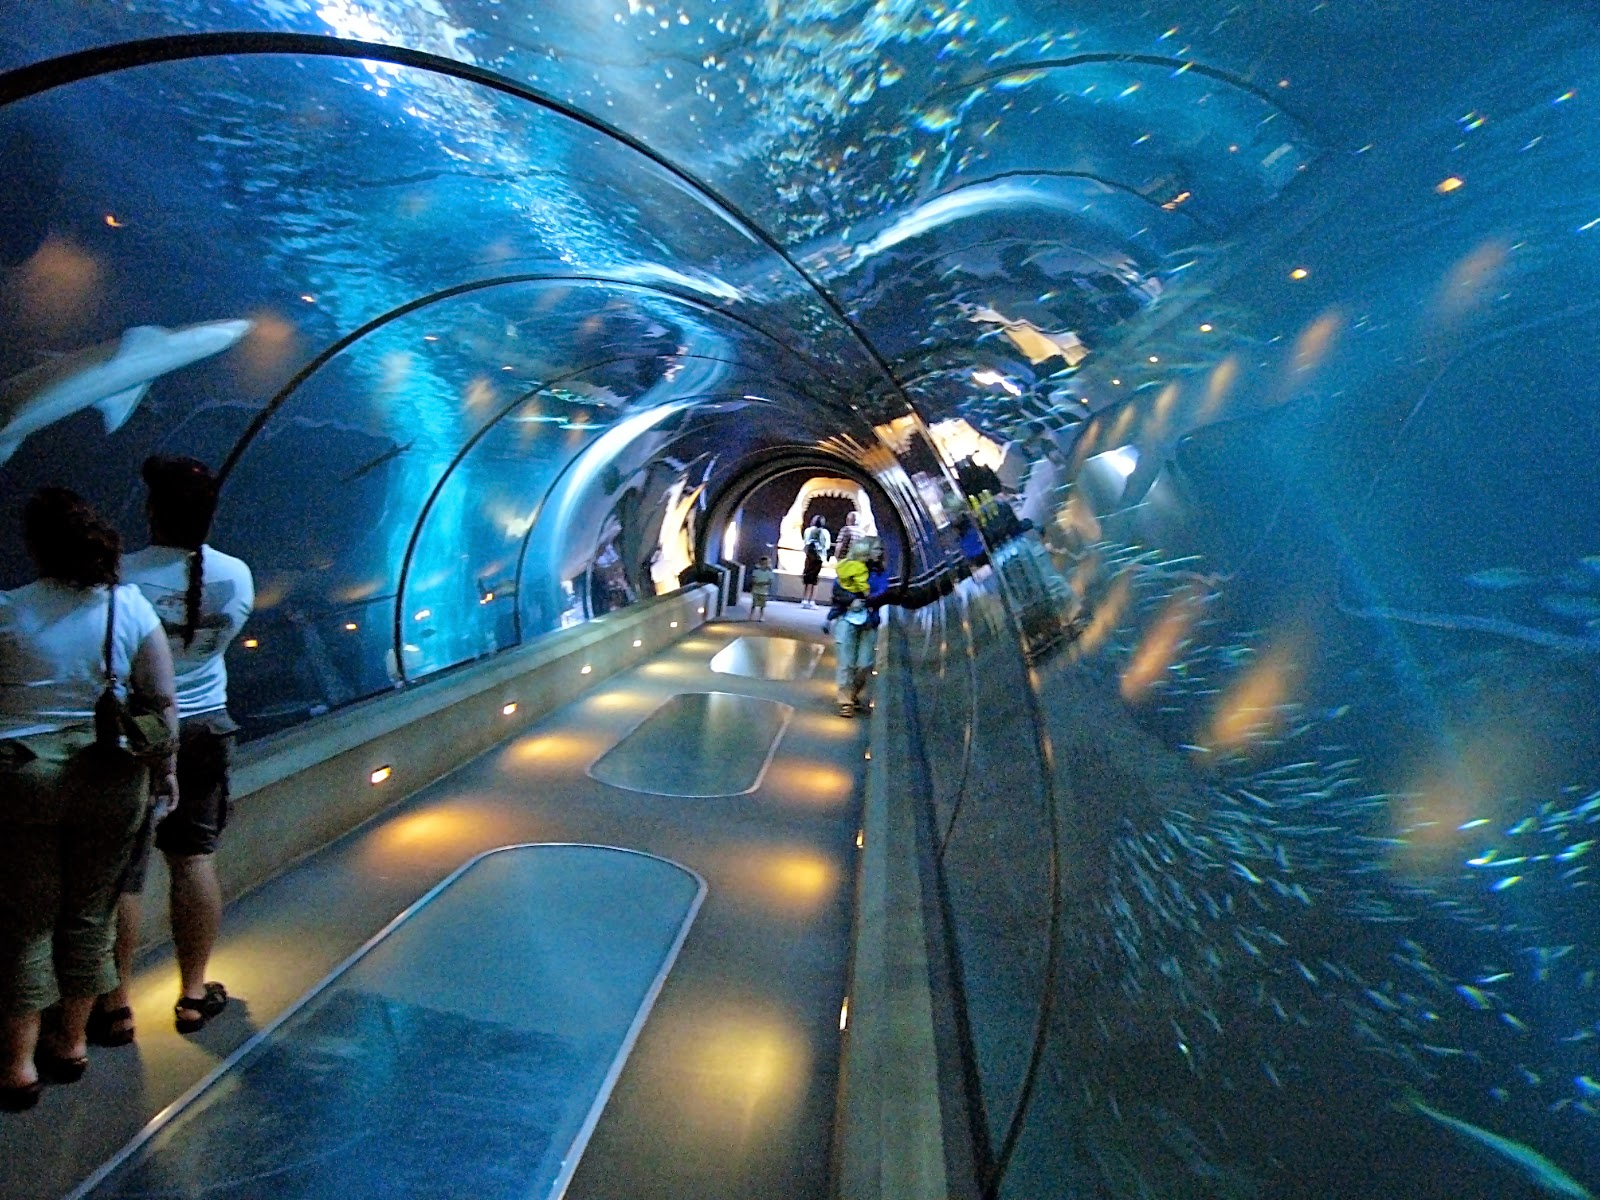 New York Hall of Science New York City, 15 Best Free Things To Do In New York City - Kid 101